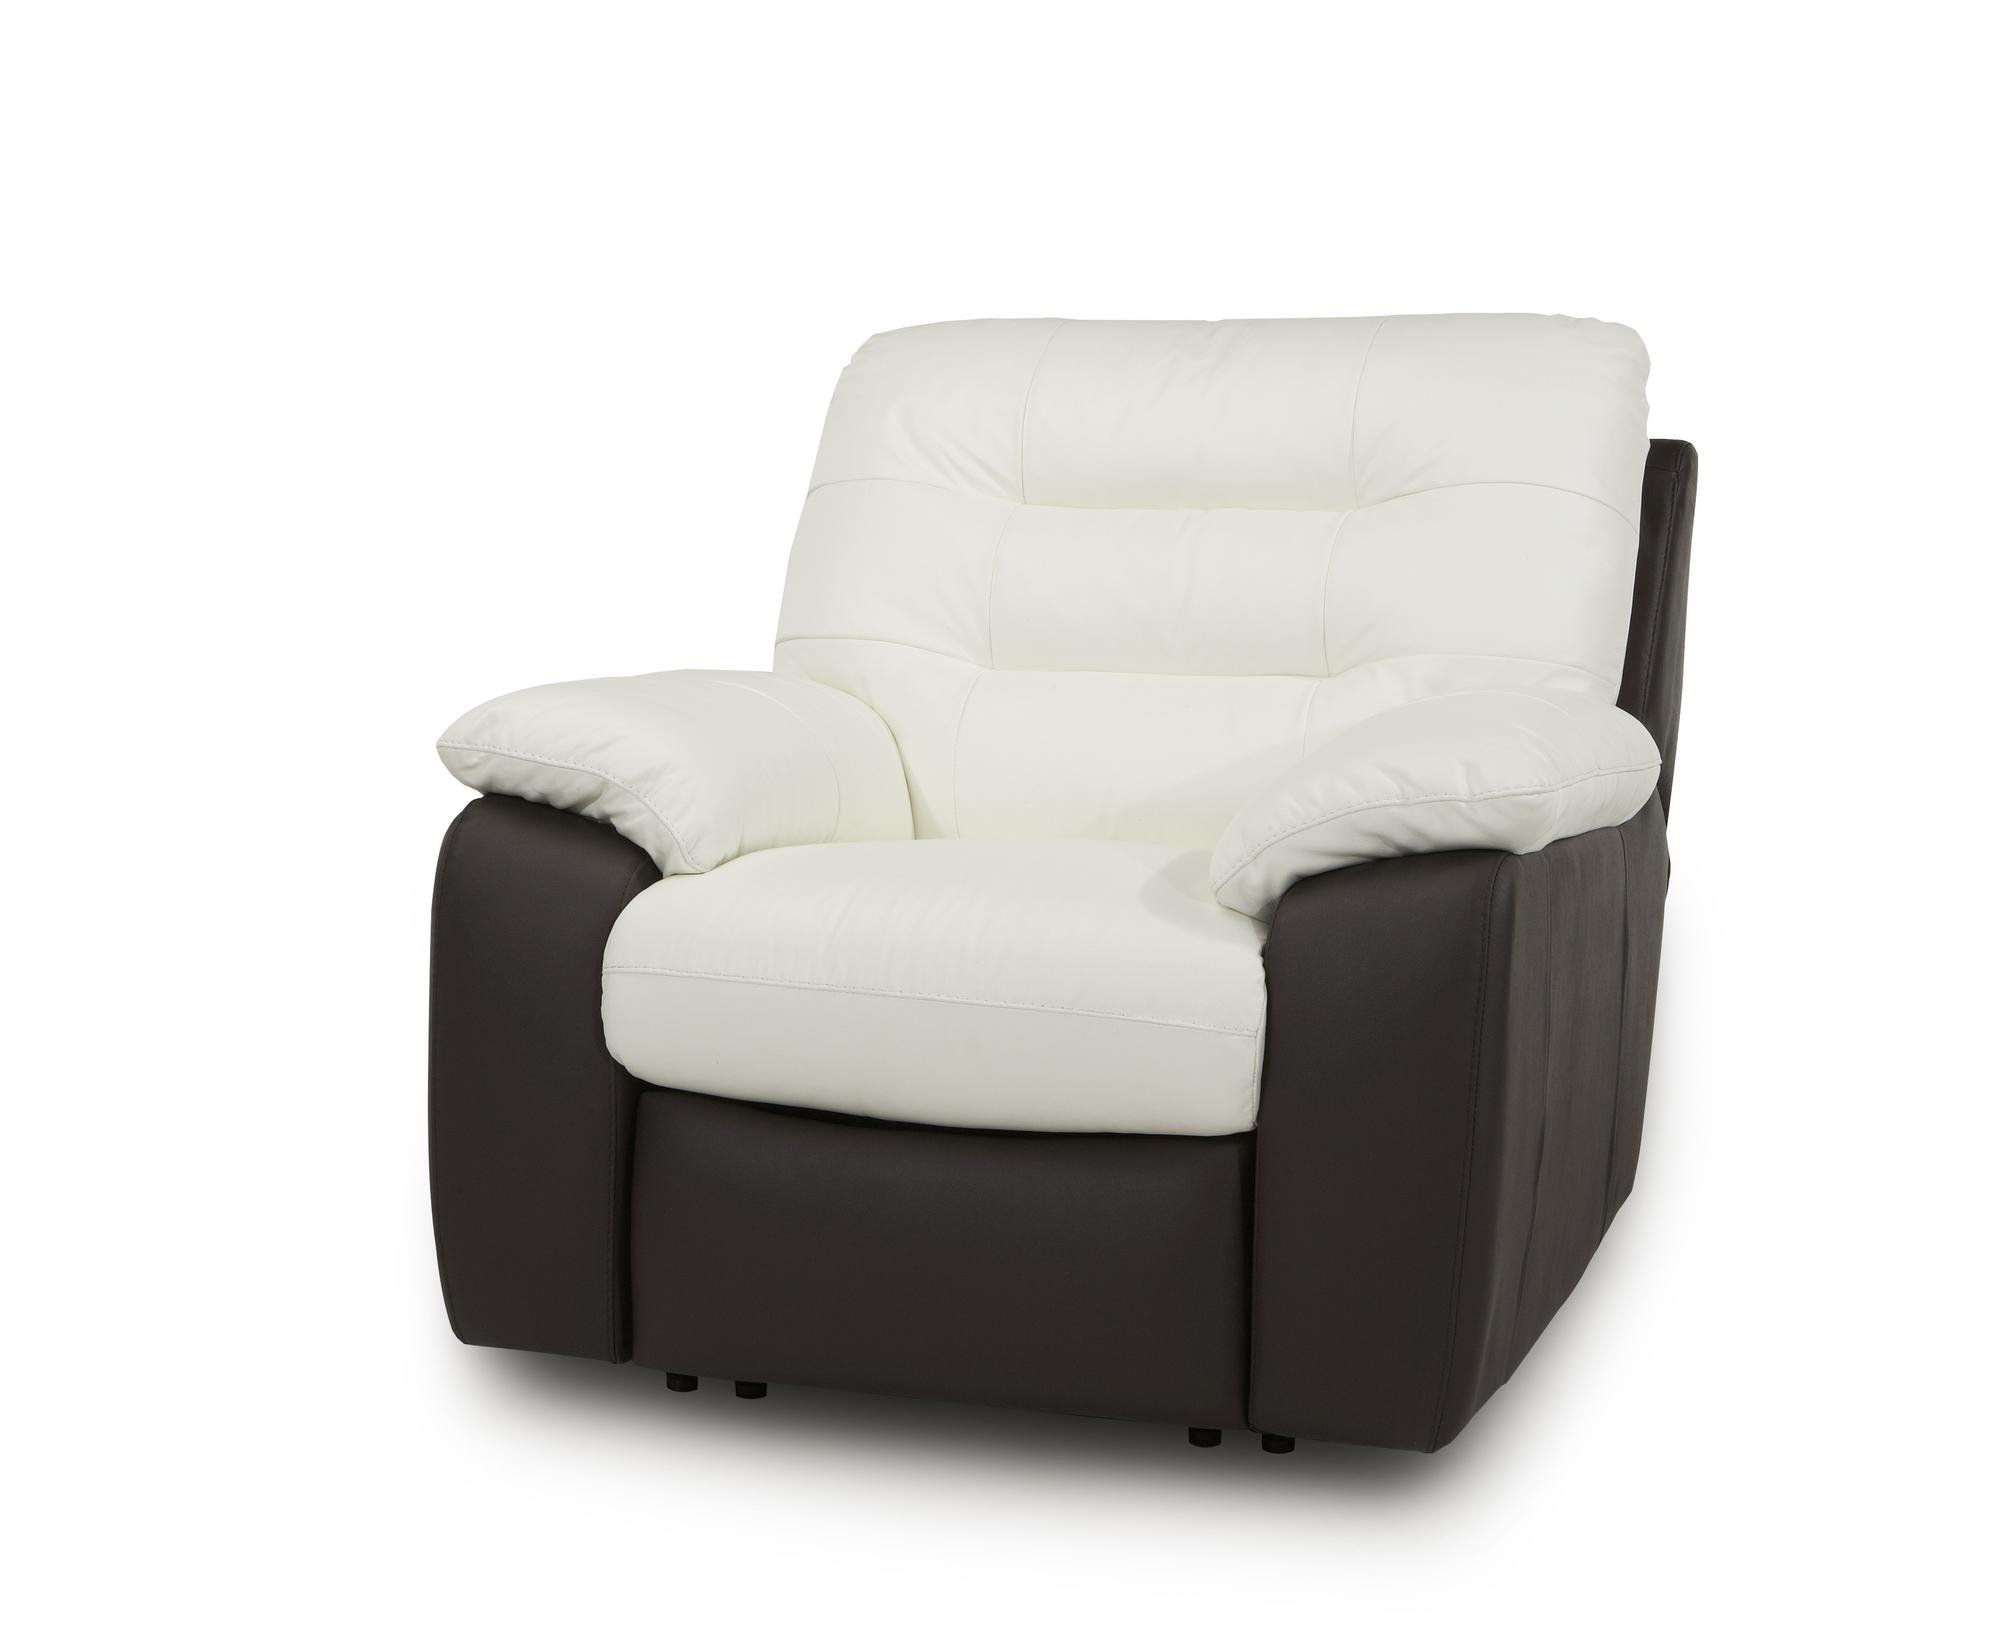 Dfs Ripple Leather Power Recliner Chair Swivel Chair